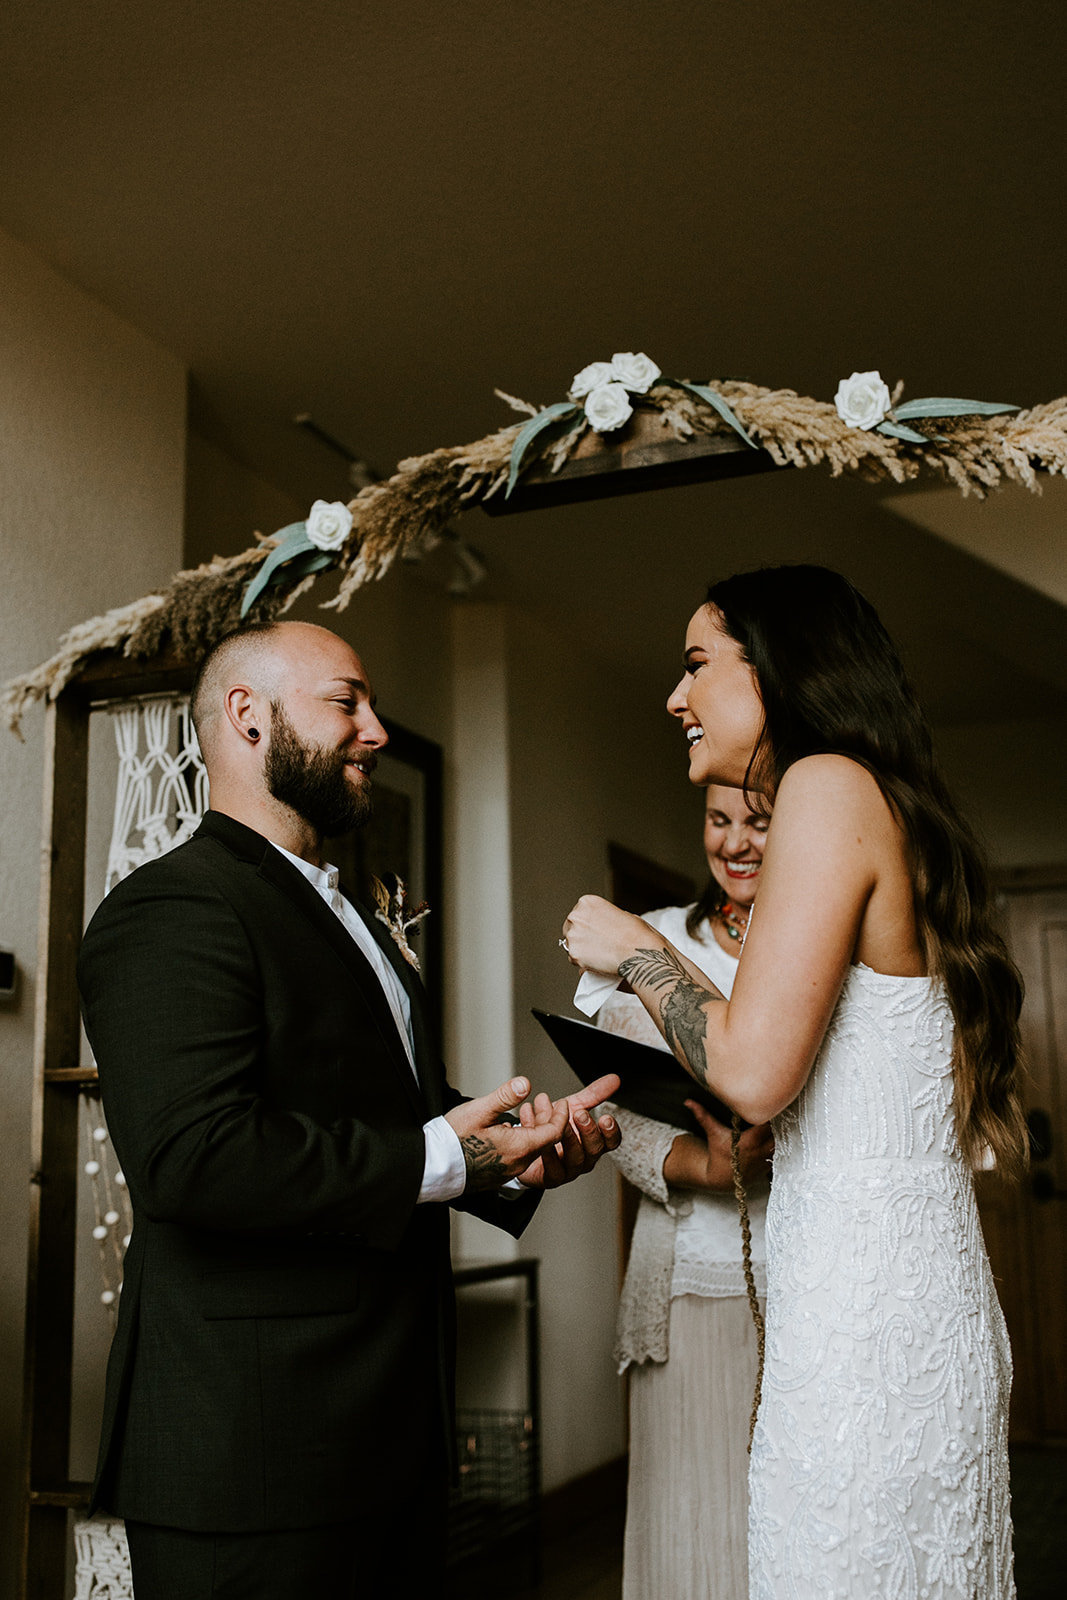 A bride and groom exchange vows.